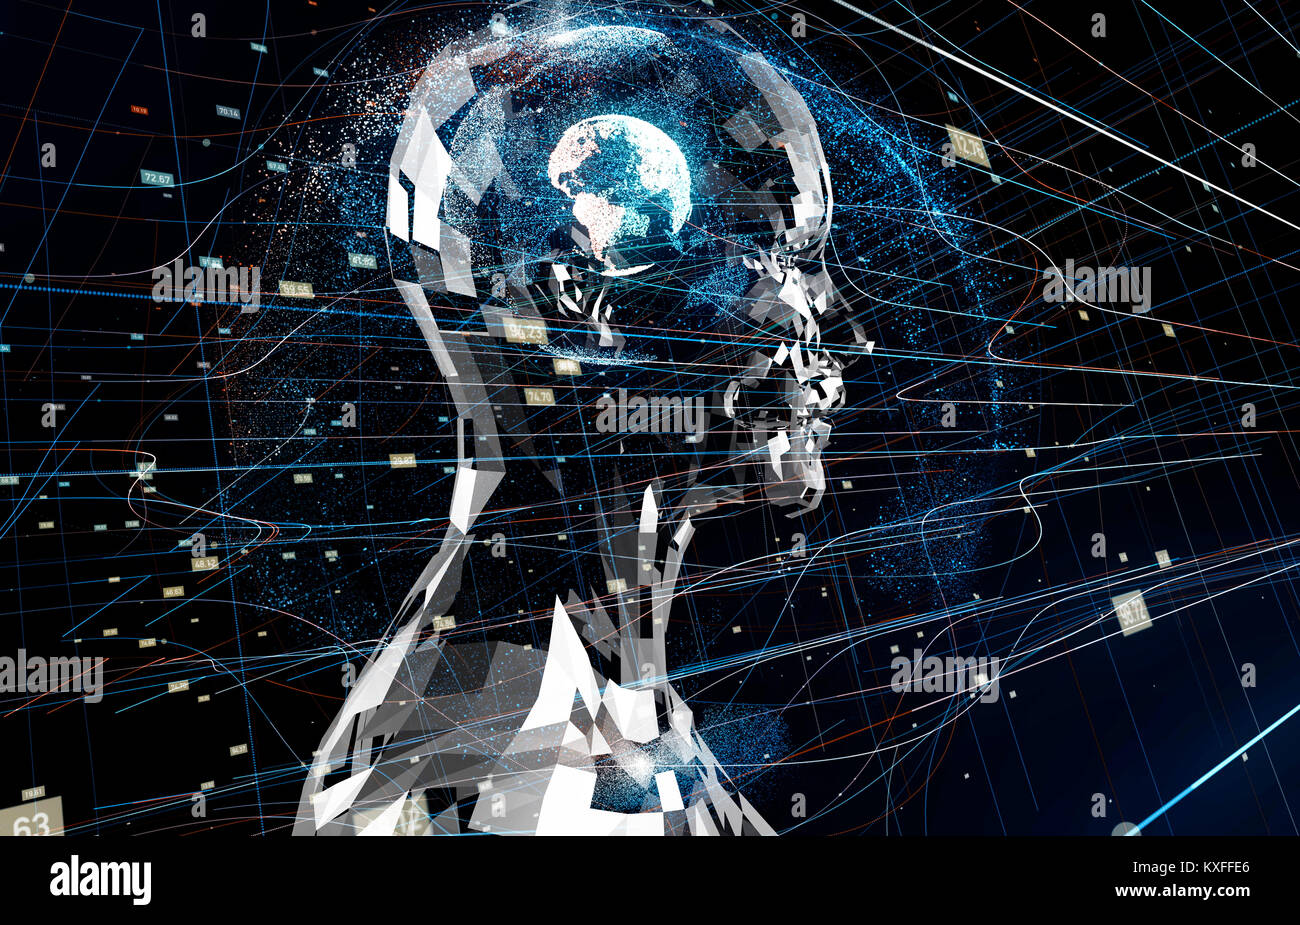 AI(Artificial Intelligence) concetto. Immagini Stock